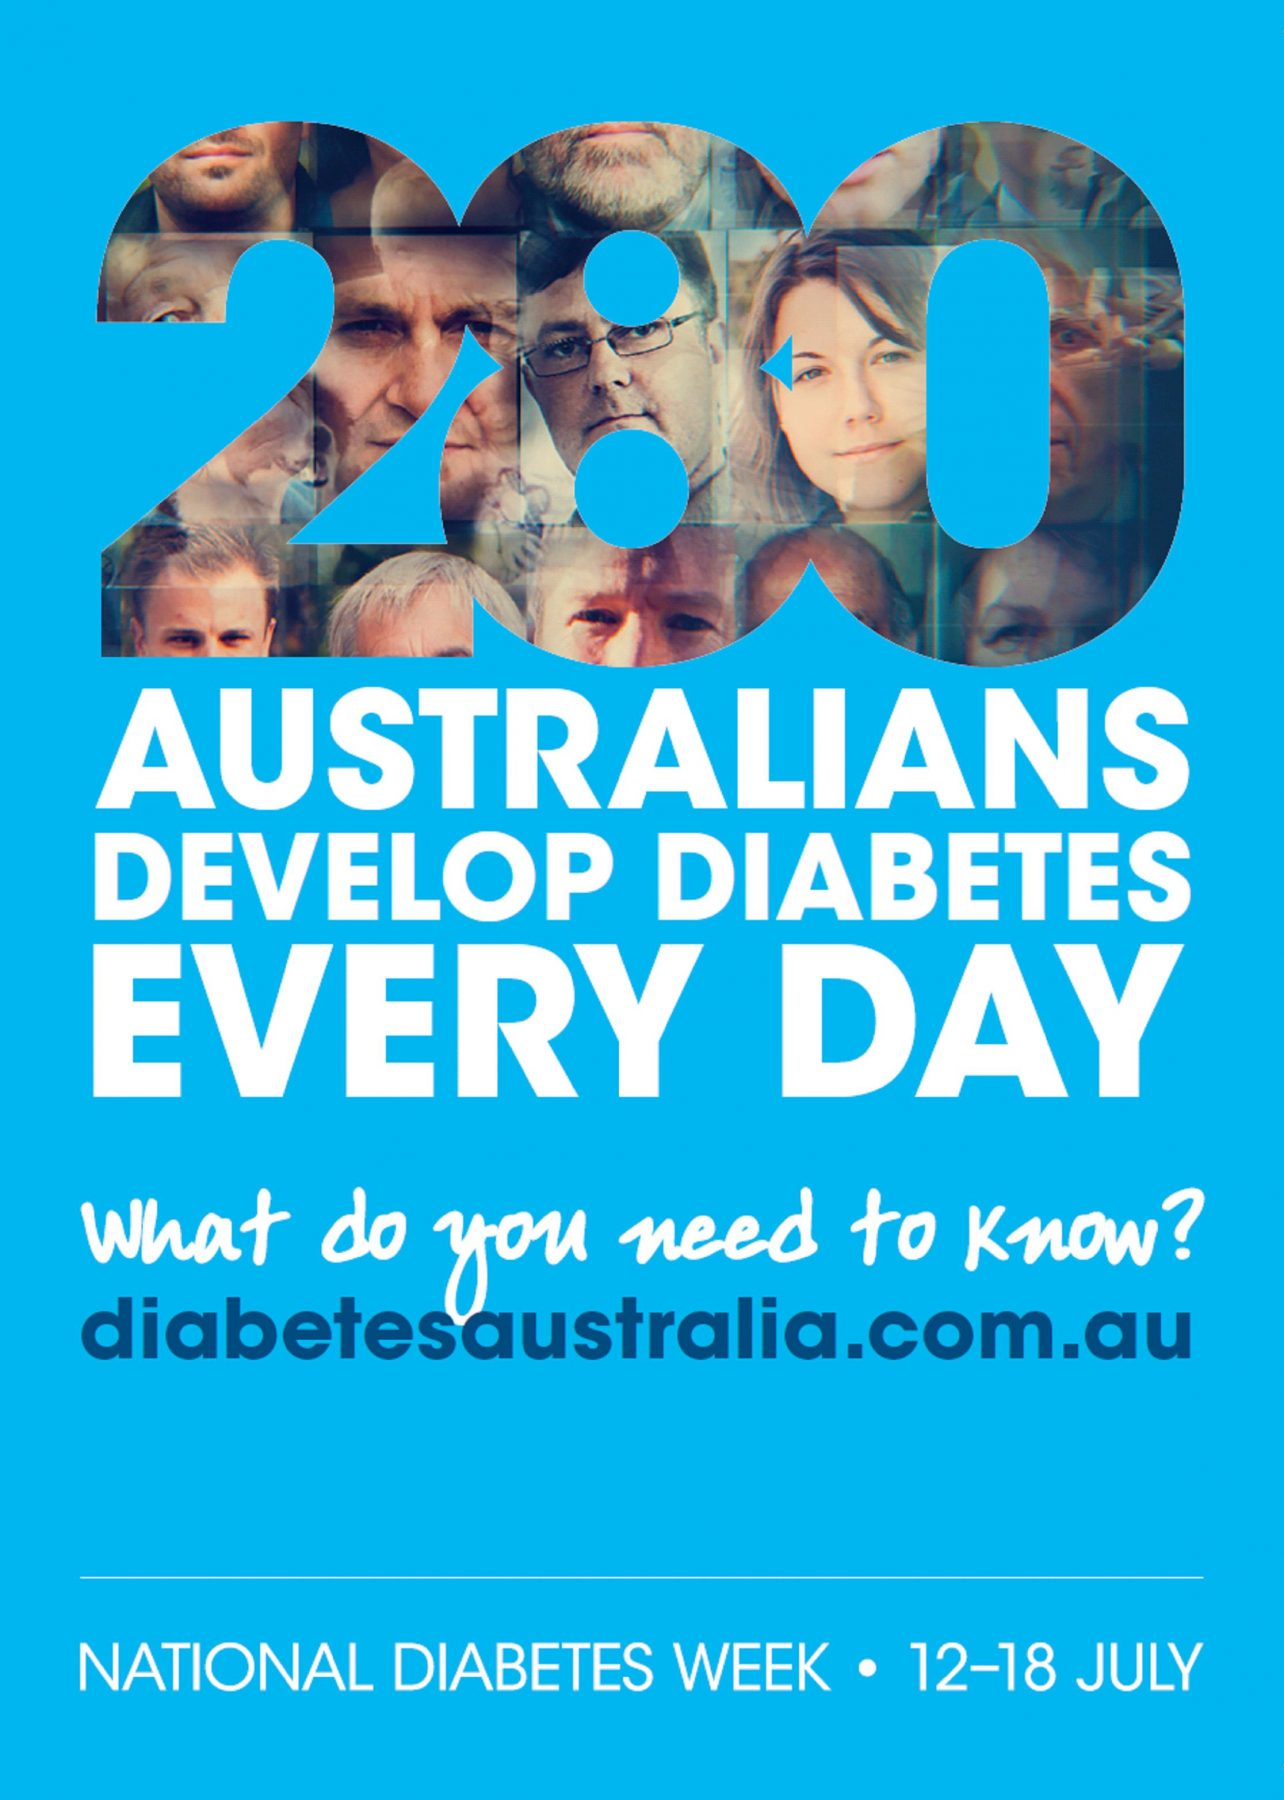 National Diabetes Week